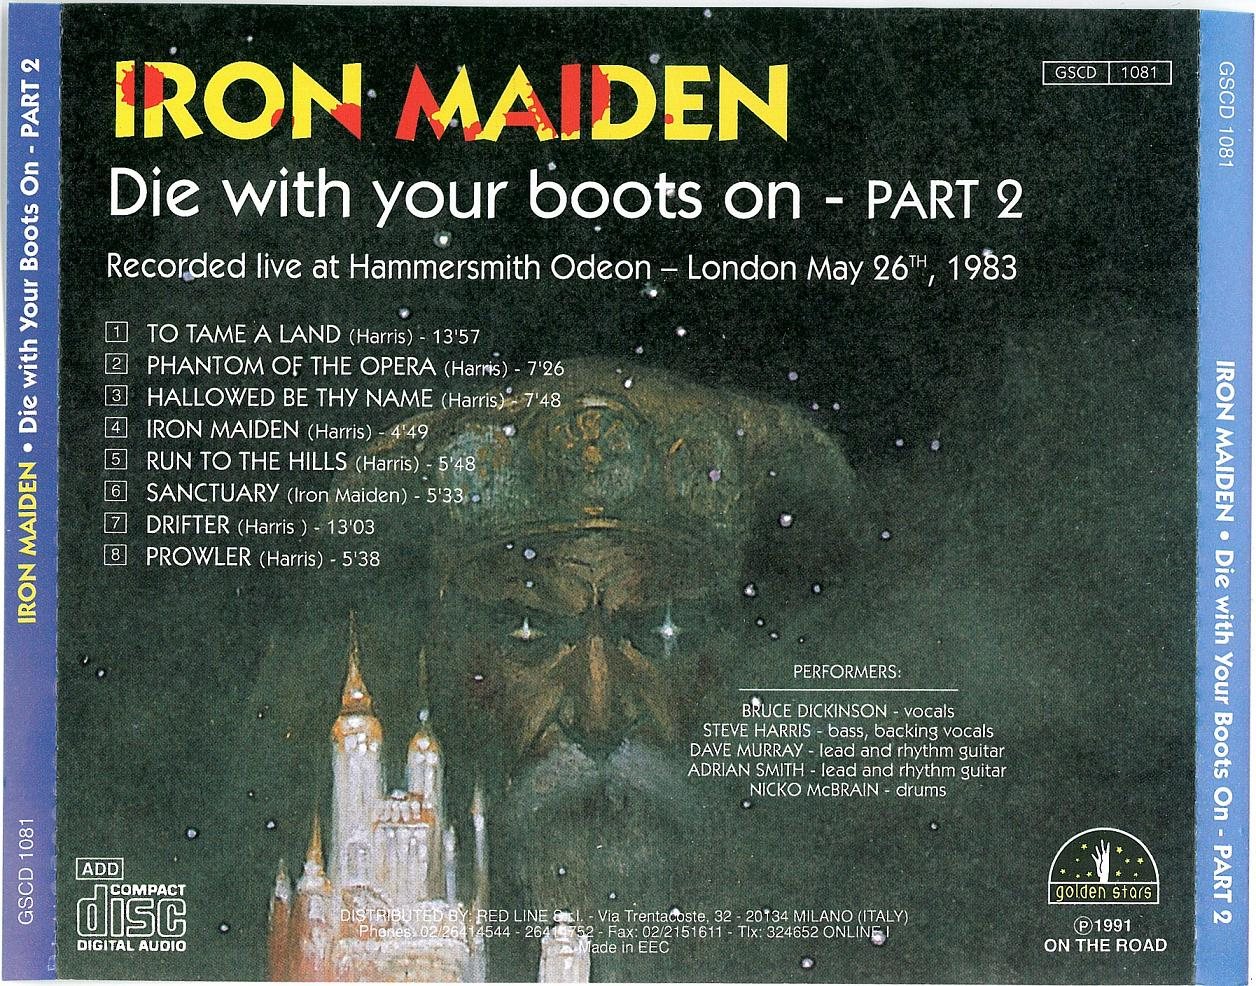 IRON MAIDEN – DIE WITH YOUR BOOTS ON – ACE BOOTLEGS